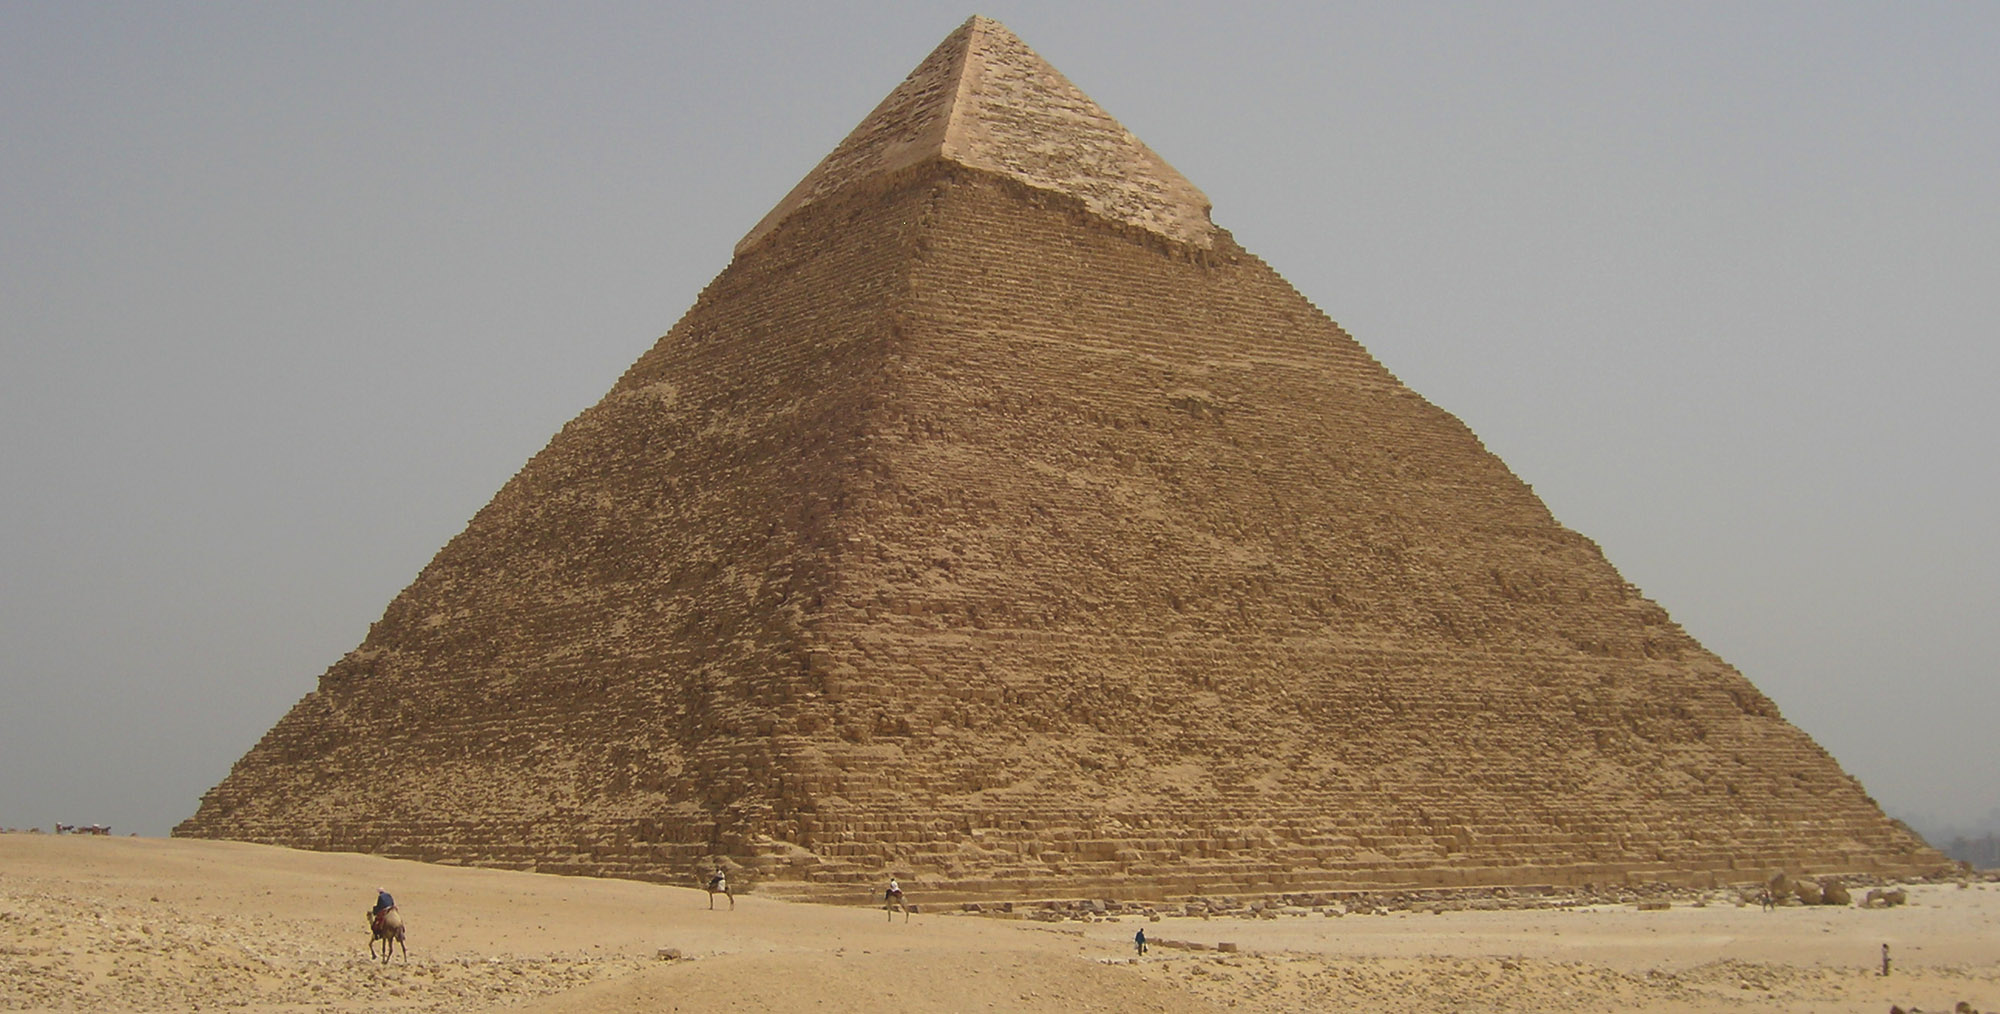 Pyramid of Khafre, Giza, courtesy to C. Redmount, J.Li